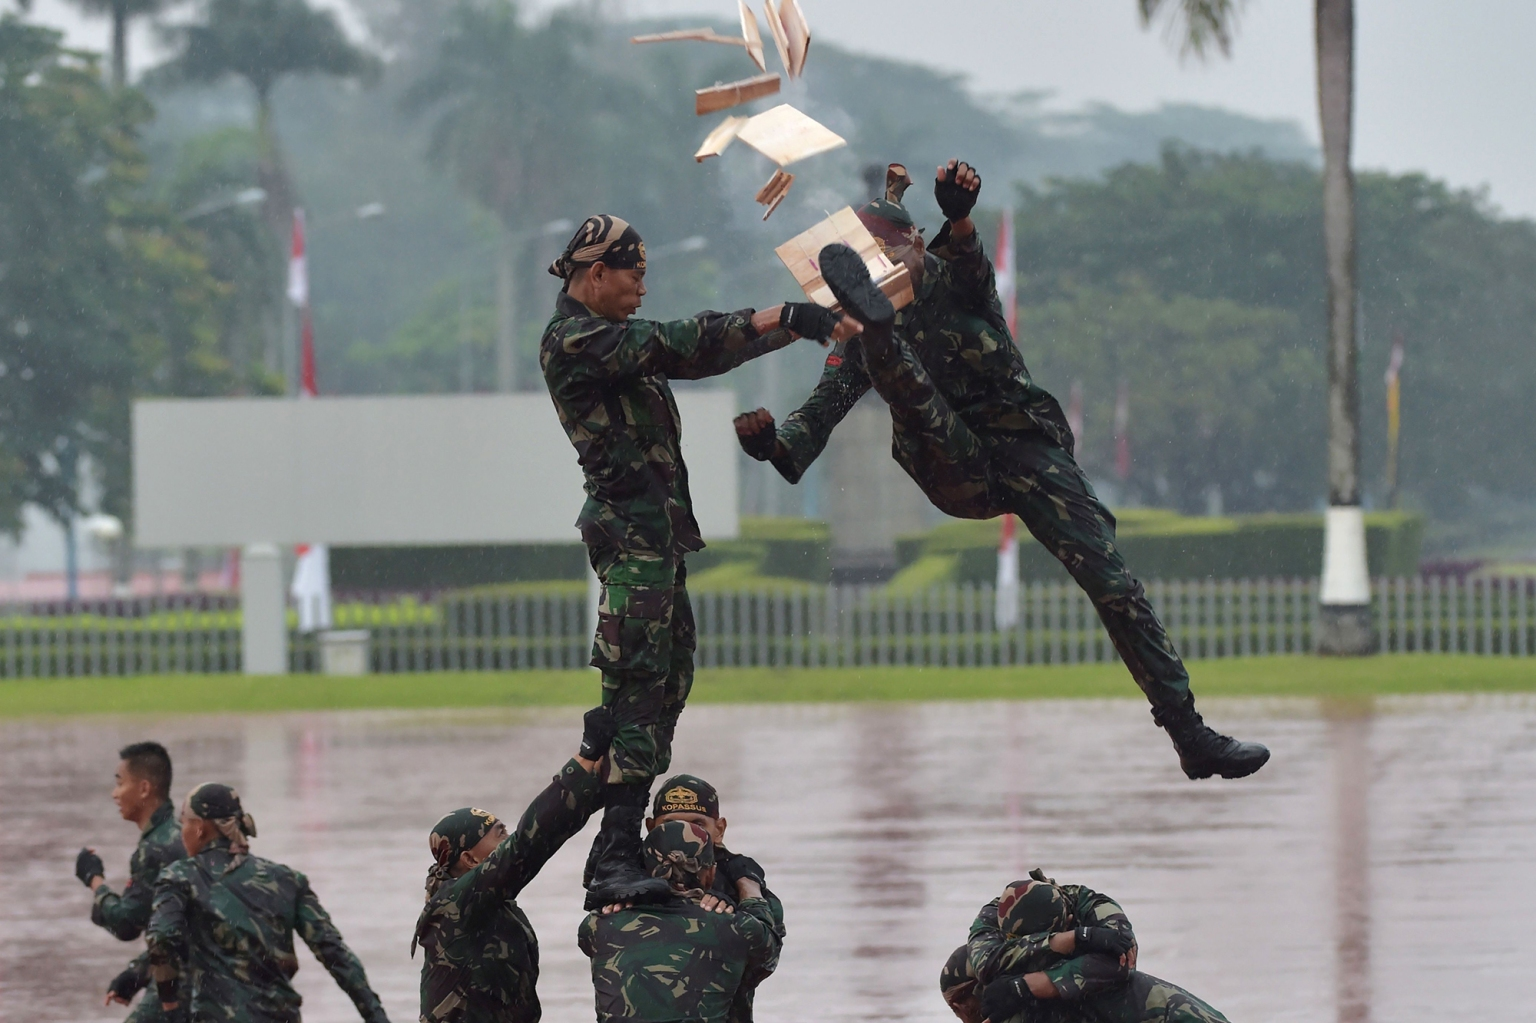 Indonesian soldiers show off their skills during a visit by Indonesian President Joko Widodo and Sultan of Brunei Hassanal Bolkiah at the Indonesian military headquarters in Jakarta on May 3. ADEK BERRY/AFP/Getty Images